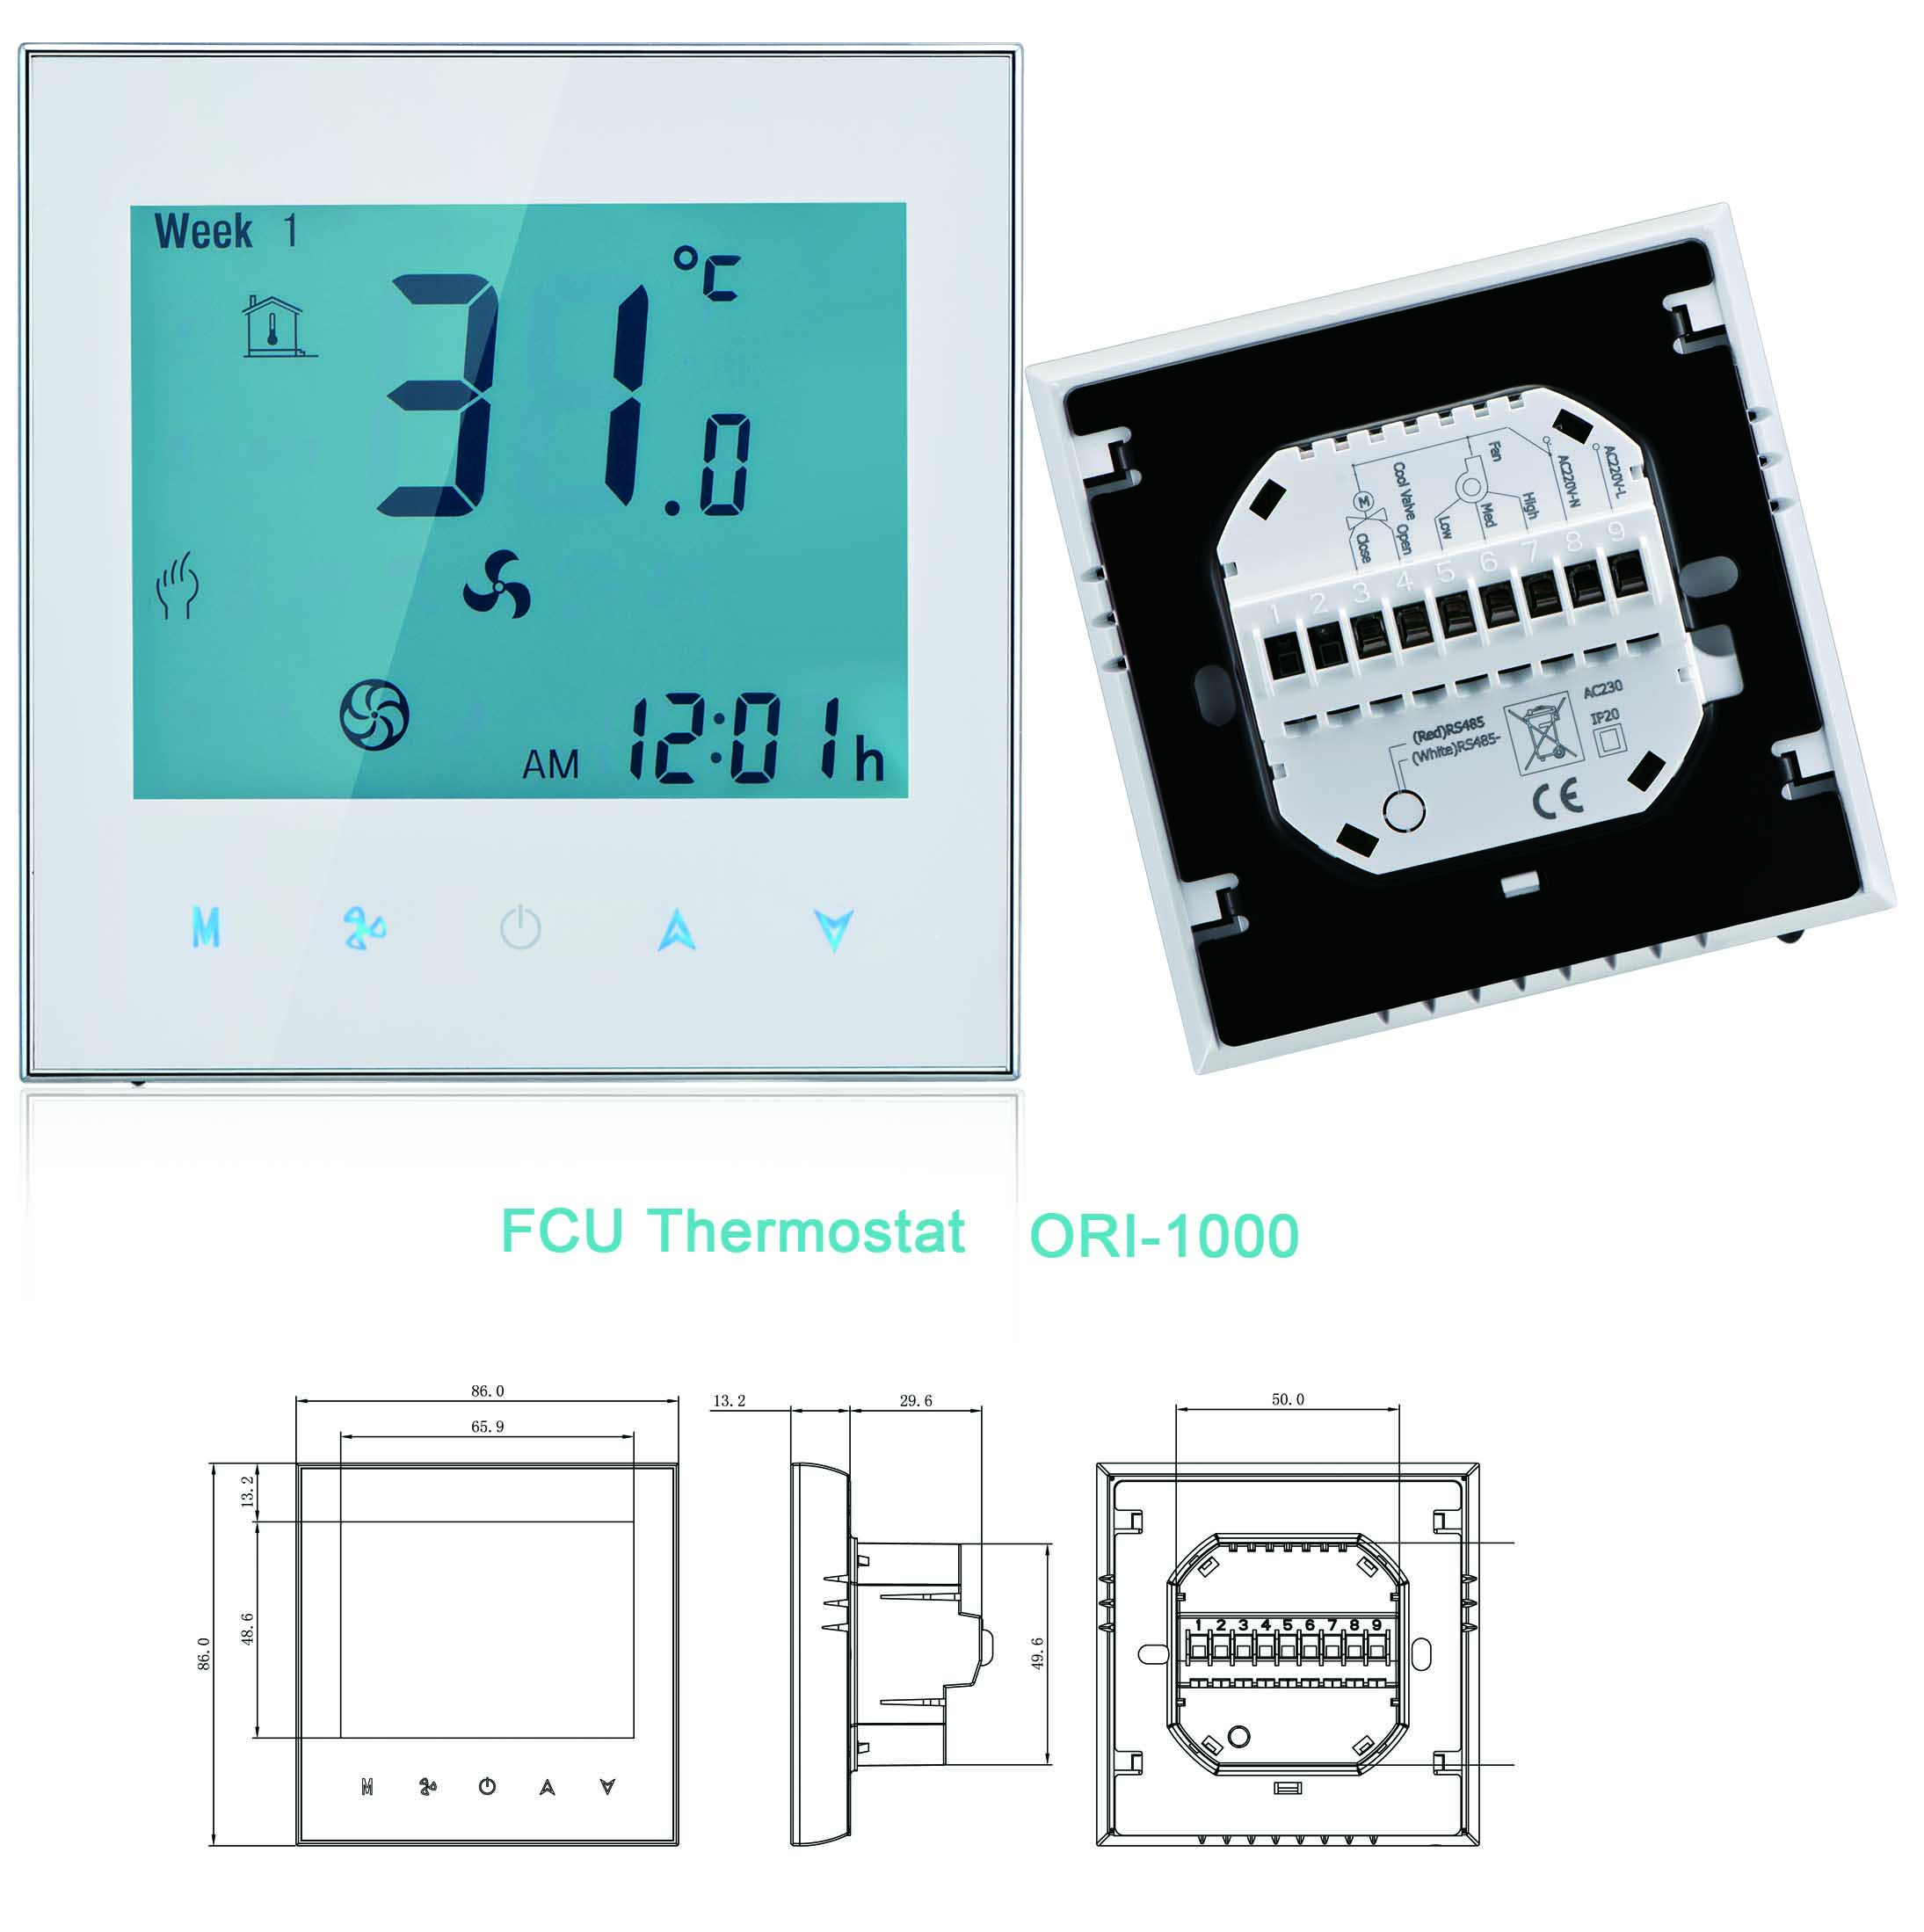 FCU Thermostat ORI-1000